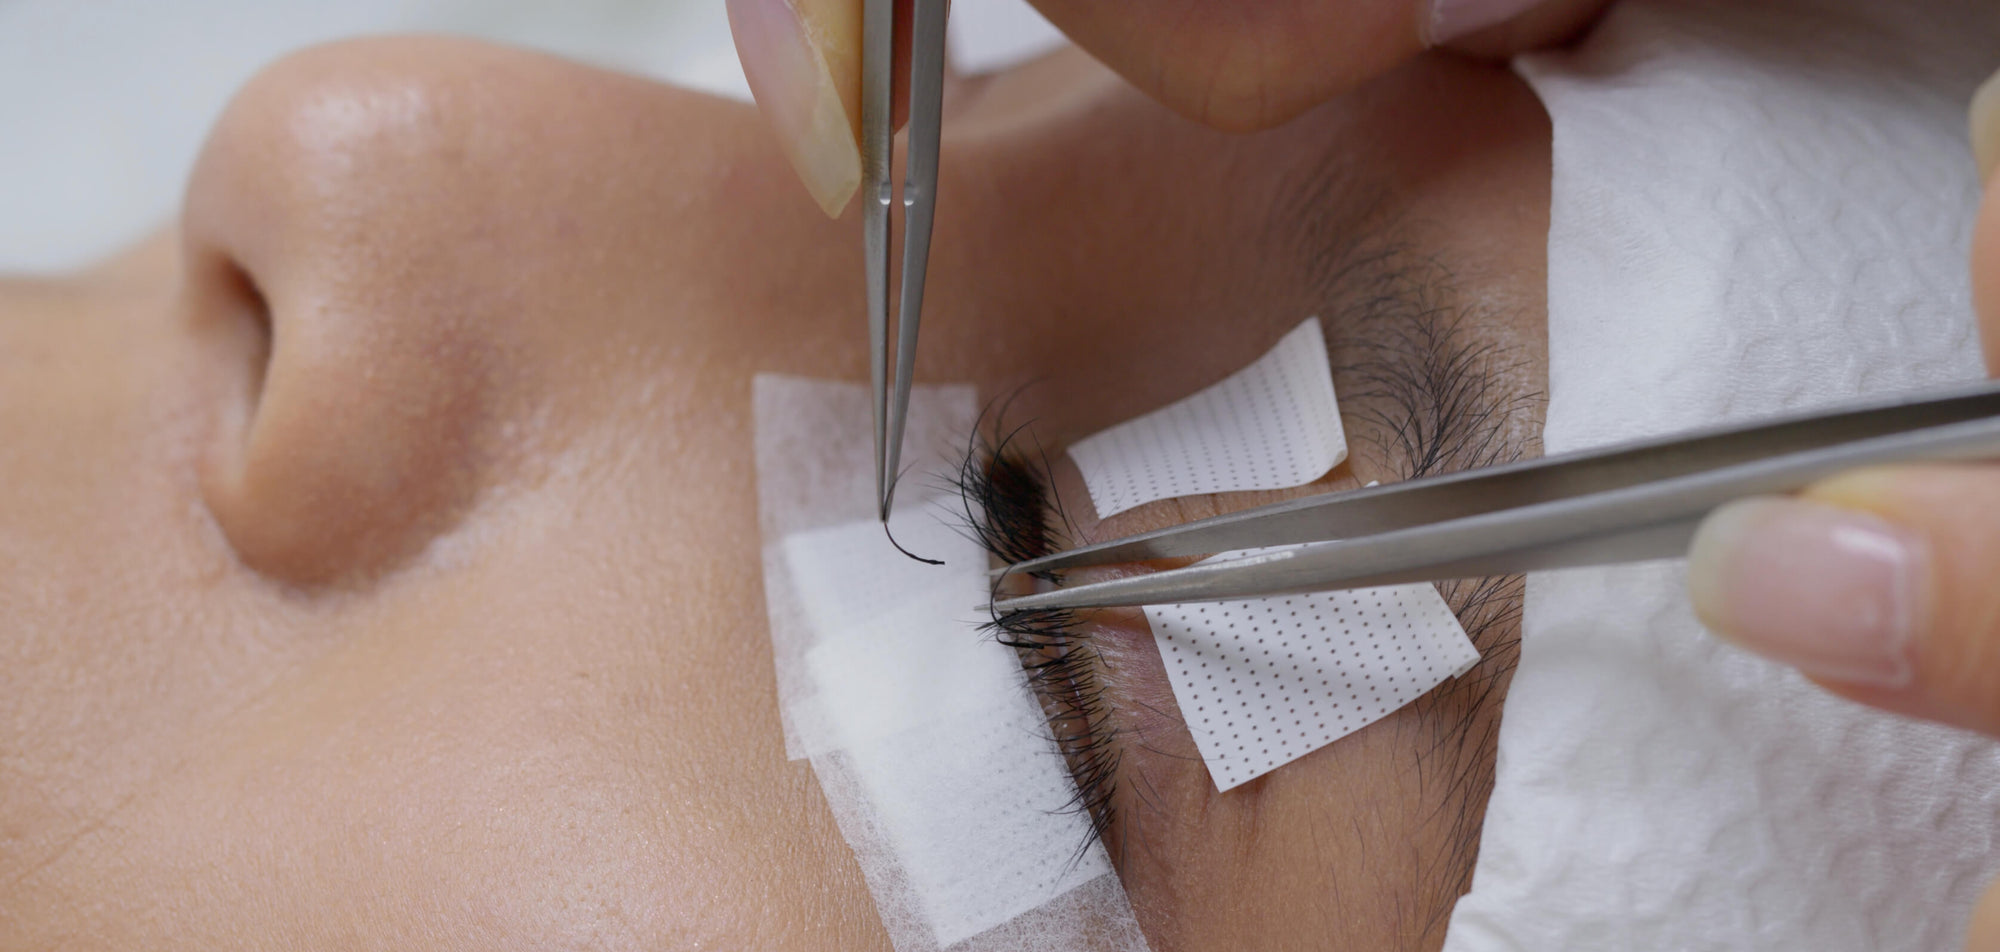 Why eyelash extensions are not good for your eyes